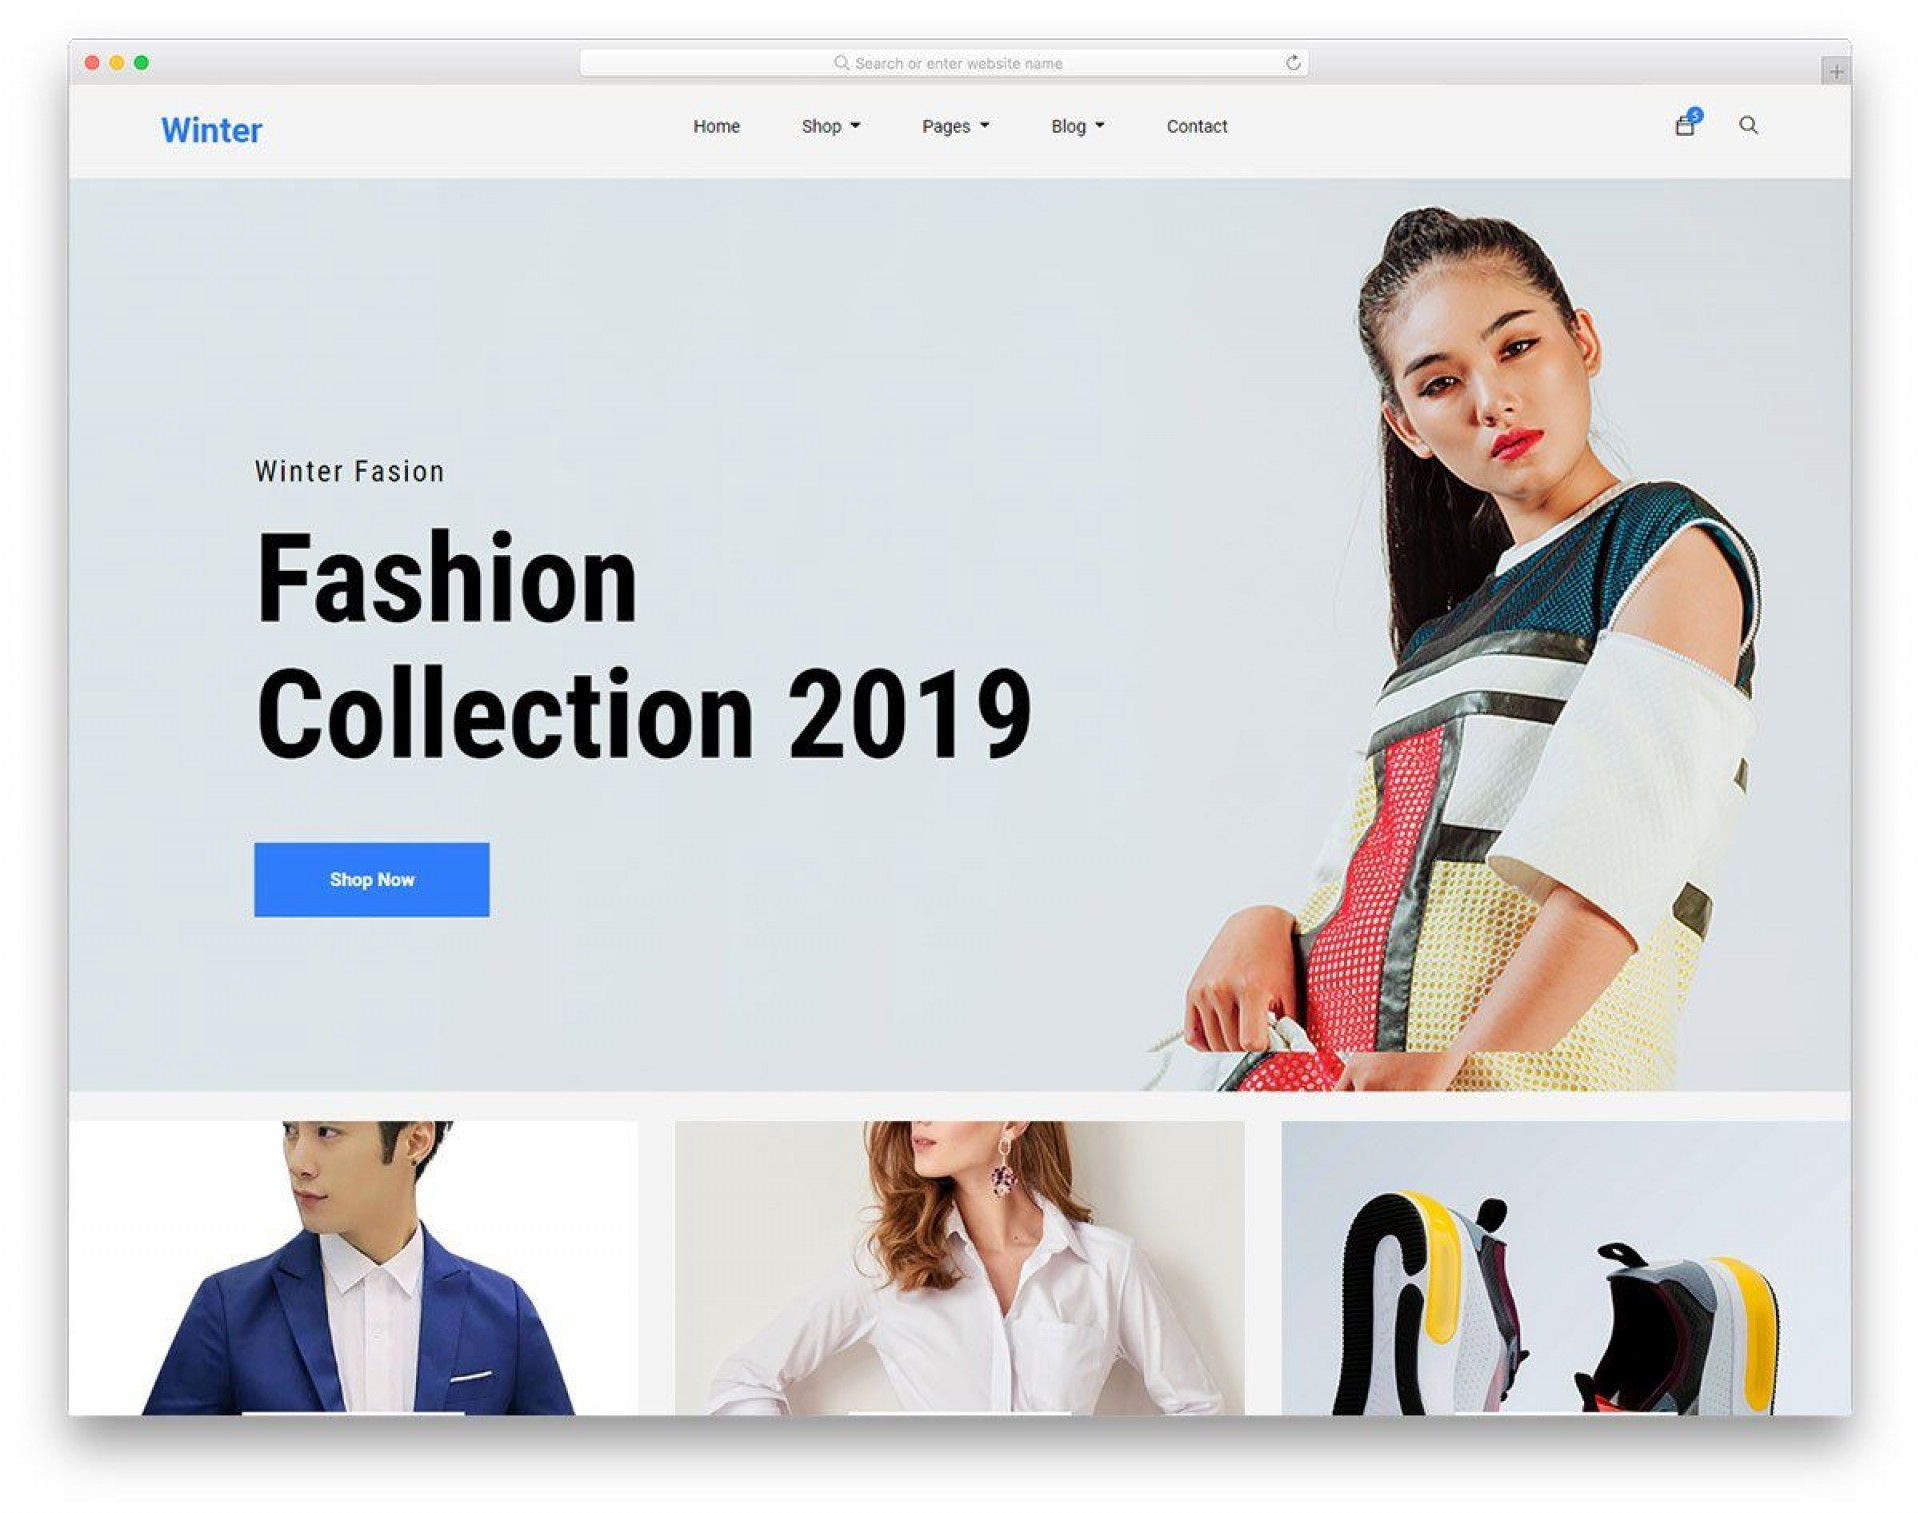 009 Archaicawful Free Ecommerce Website Template Design  With Shopping Cart Admin Panel Bootstrap1920